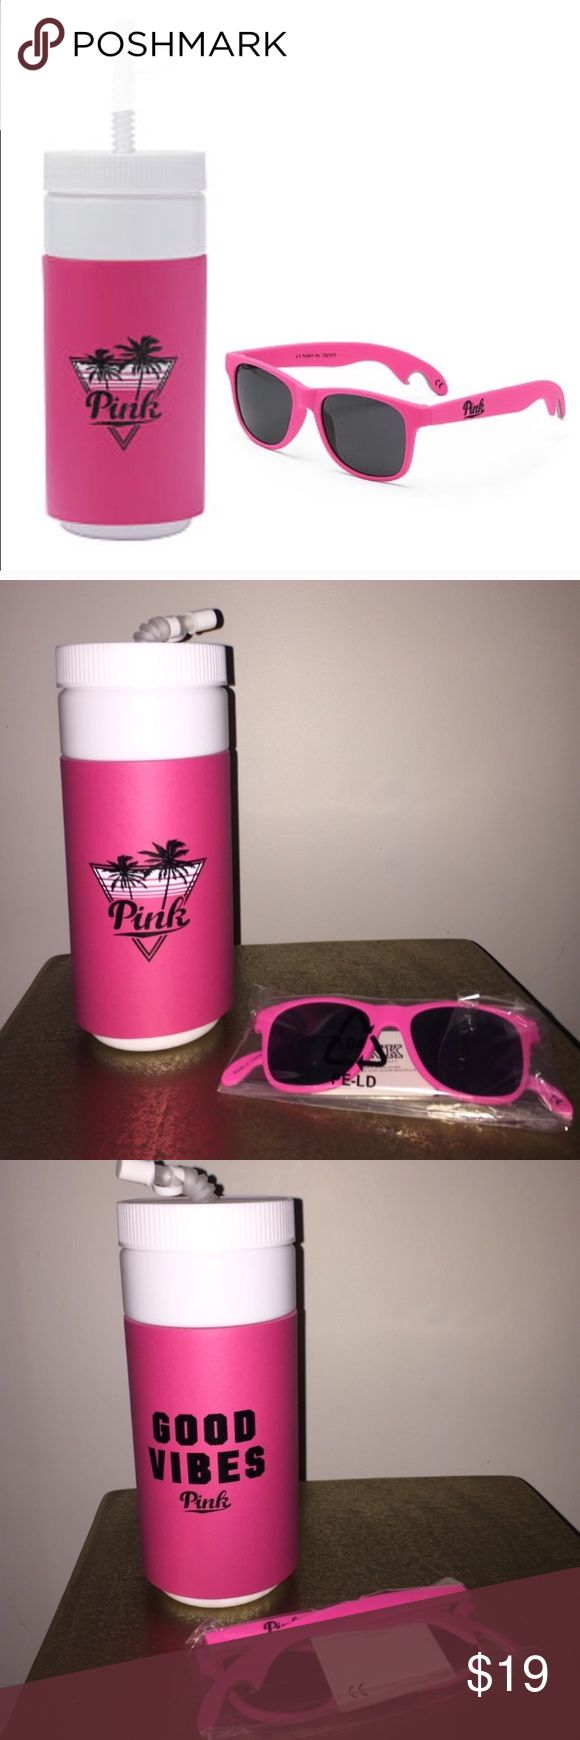 NWT VS PINK Good Vibes Spring Break Waterbottle Brand new in plastic packaging! Victoria's Secret PINK Spring Break essential - big water bottle with a straw that reads GOOD VIBES with the pink logo. Perfect for the upcoming warm weather. Super cute in hot pink! Brand new! Retails at $24.95 PINK Victoria's Secret Accessories